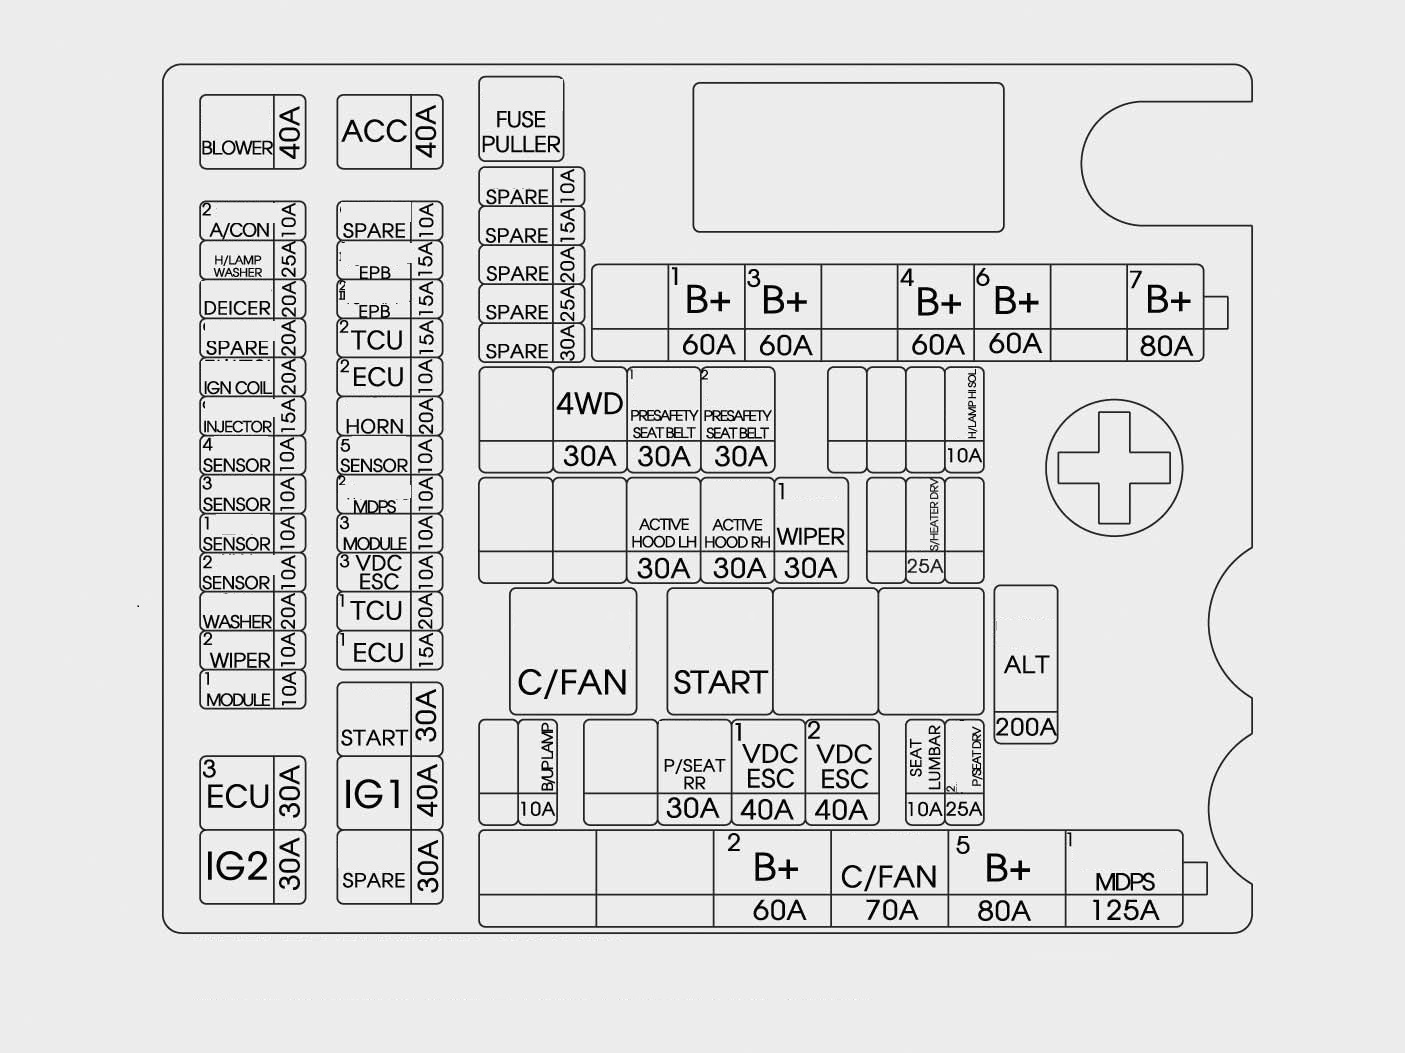 hyundai atos fuse box diagram example electrical wiring diagram u2022 rh huntervalleyhotels co 2011 hyundai genesis fuse box diagram 2010 hyundai genesis fuse box diagram